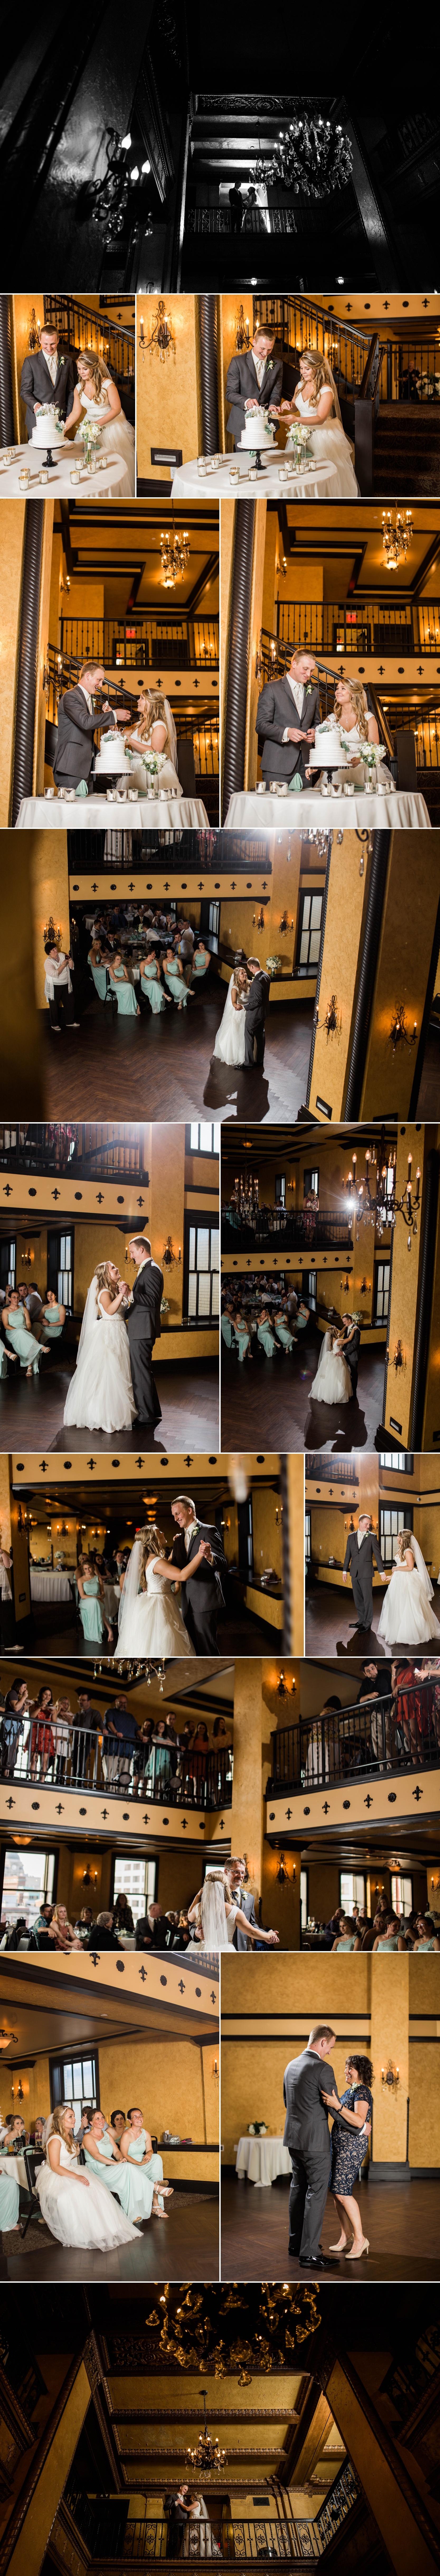 embassy - fort wayne - indiana - reception - wedding